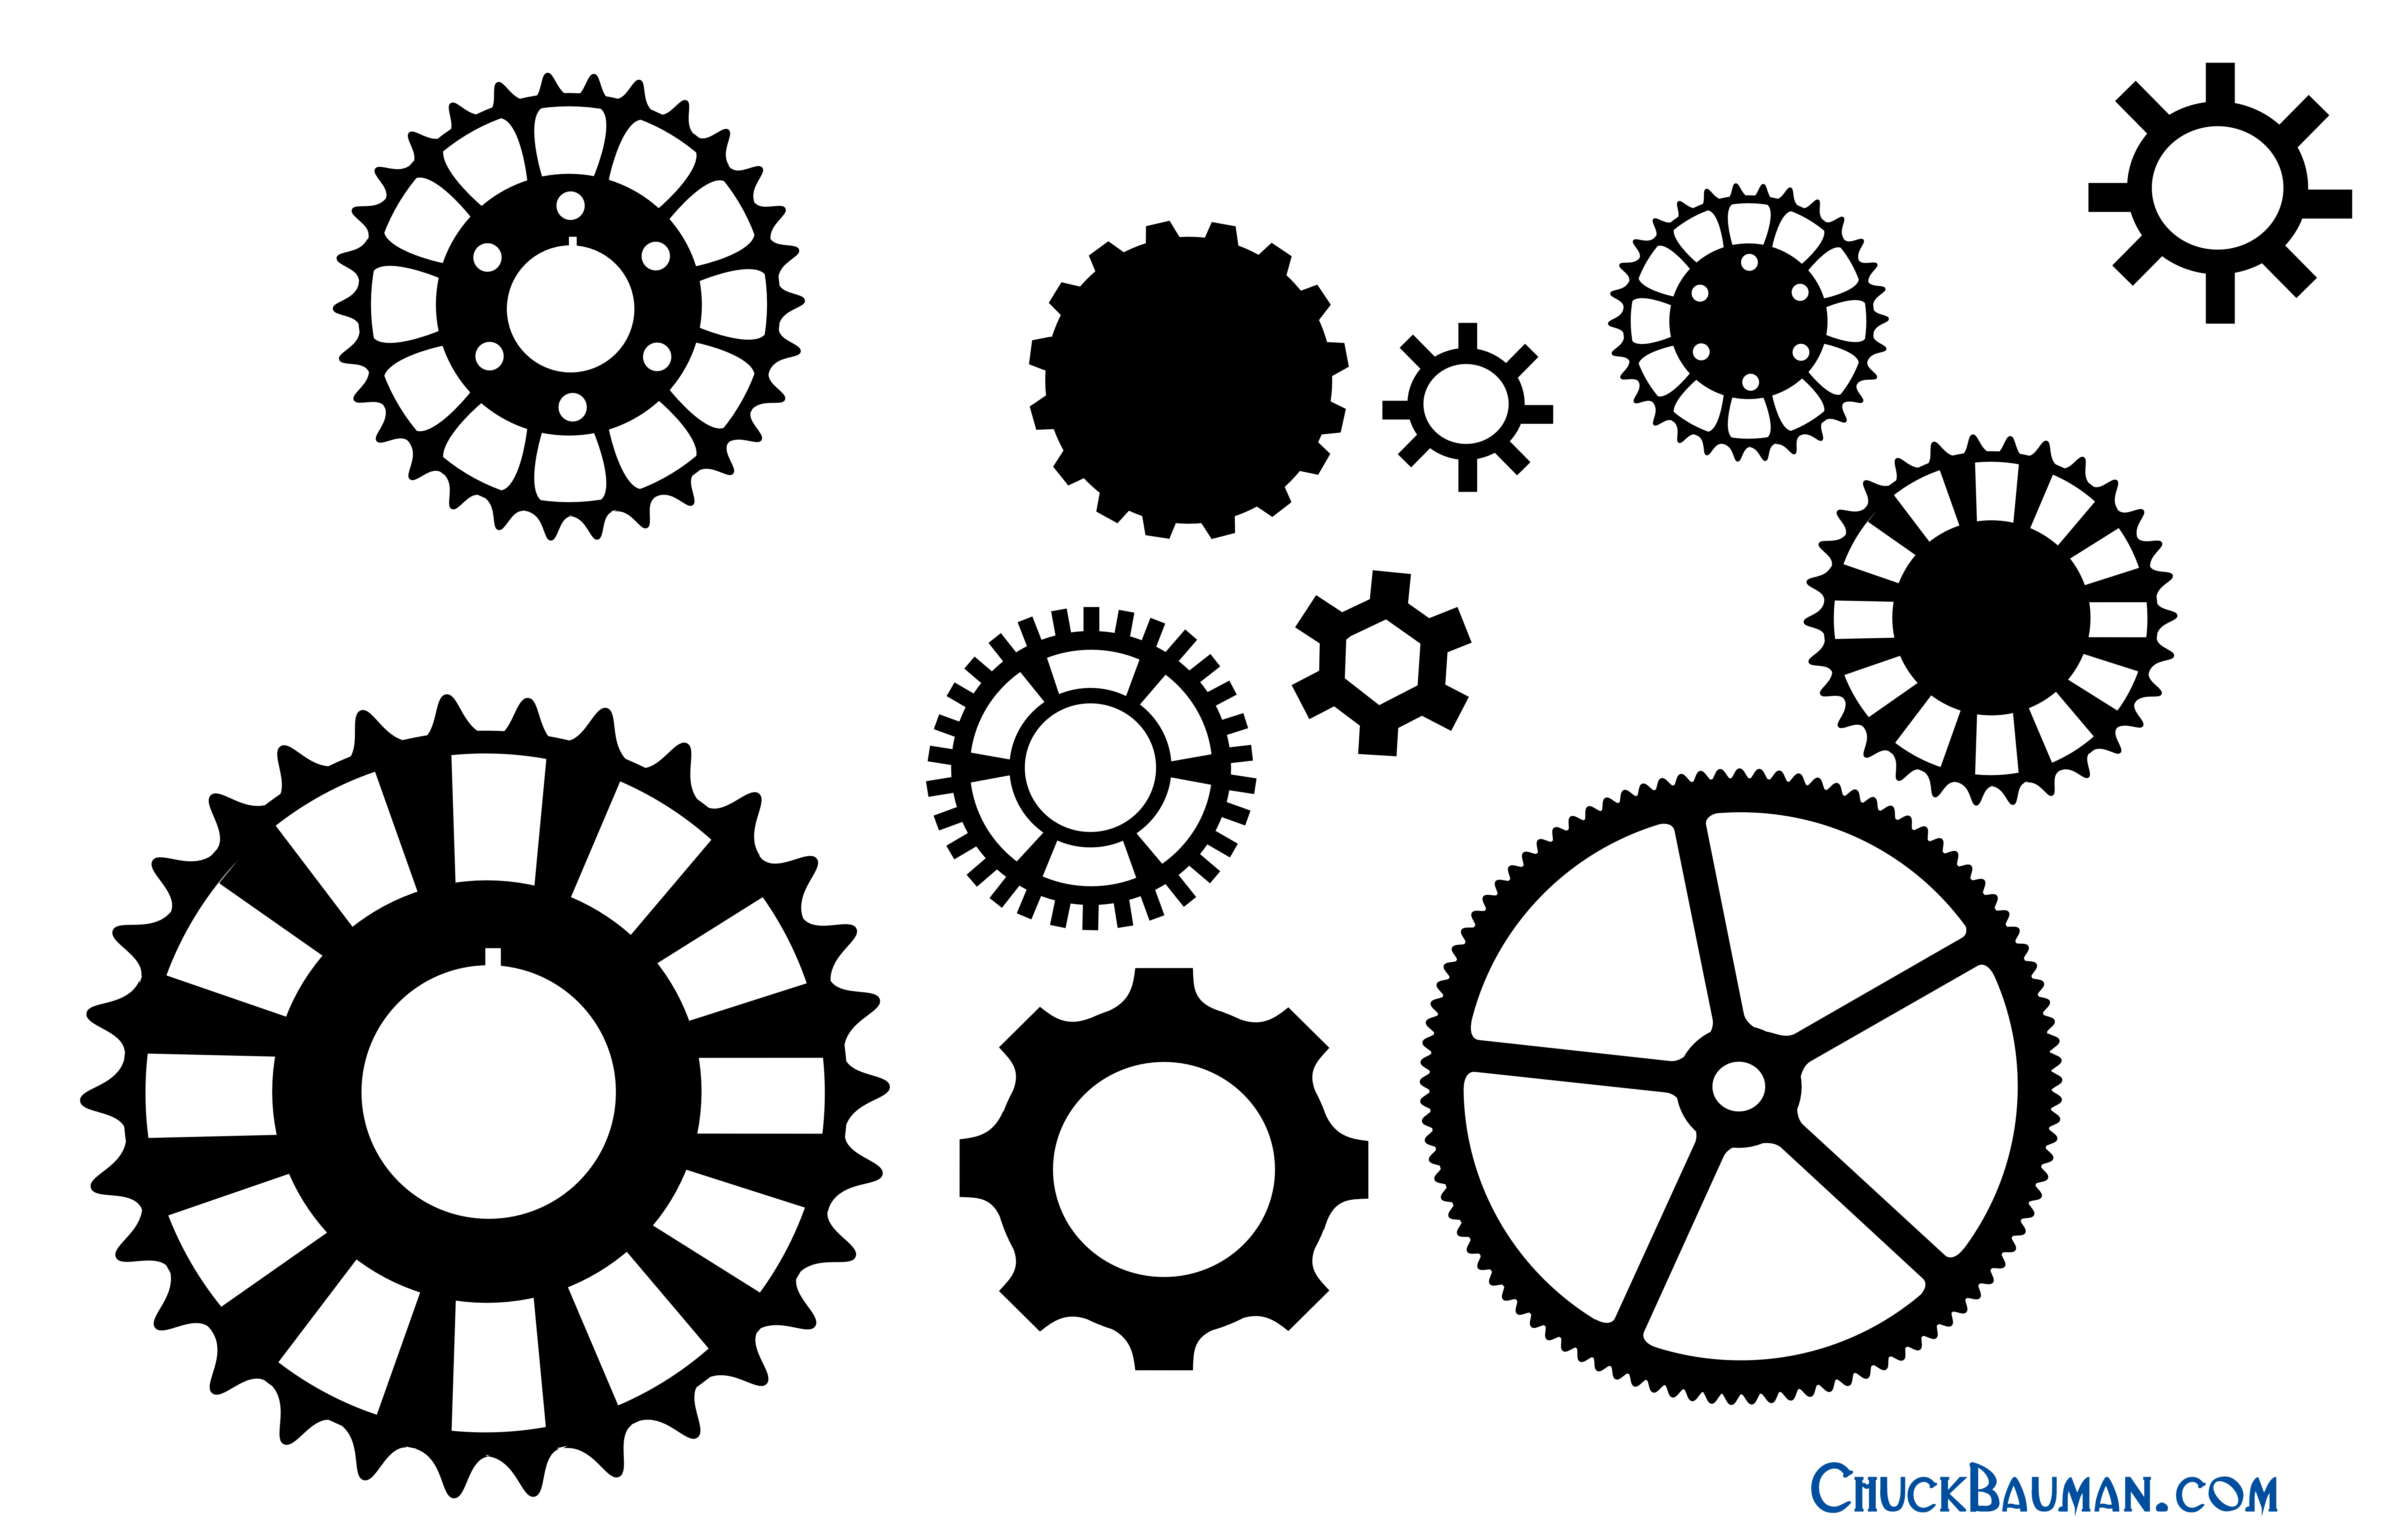 photograph regarding Gears Printable identify Totally free Steampunk Equipment Cliparts, Down load No cost Clip Artwork, Cost-free